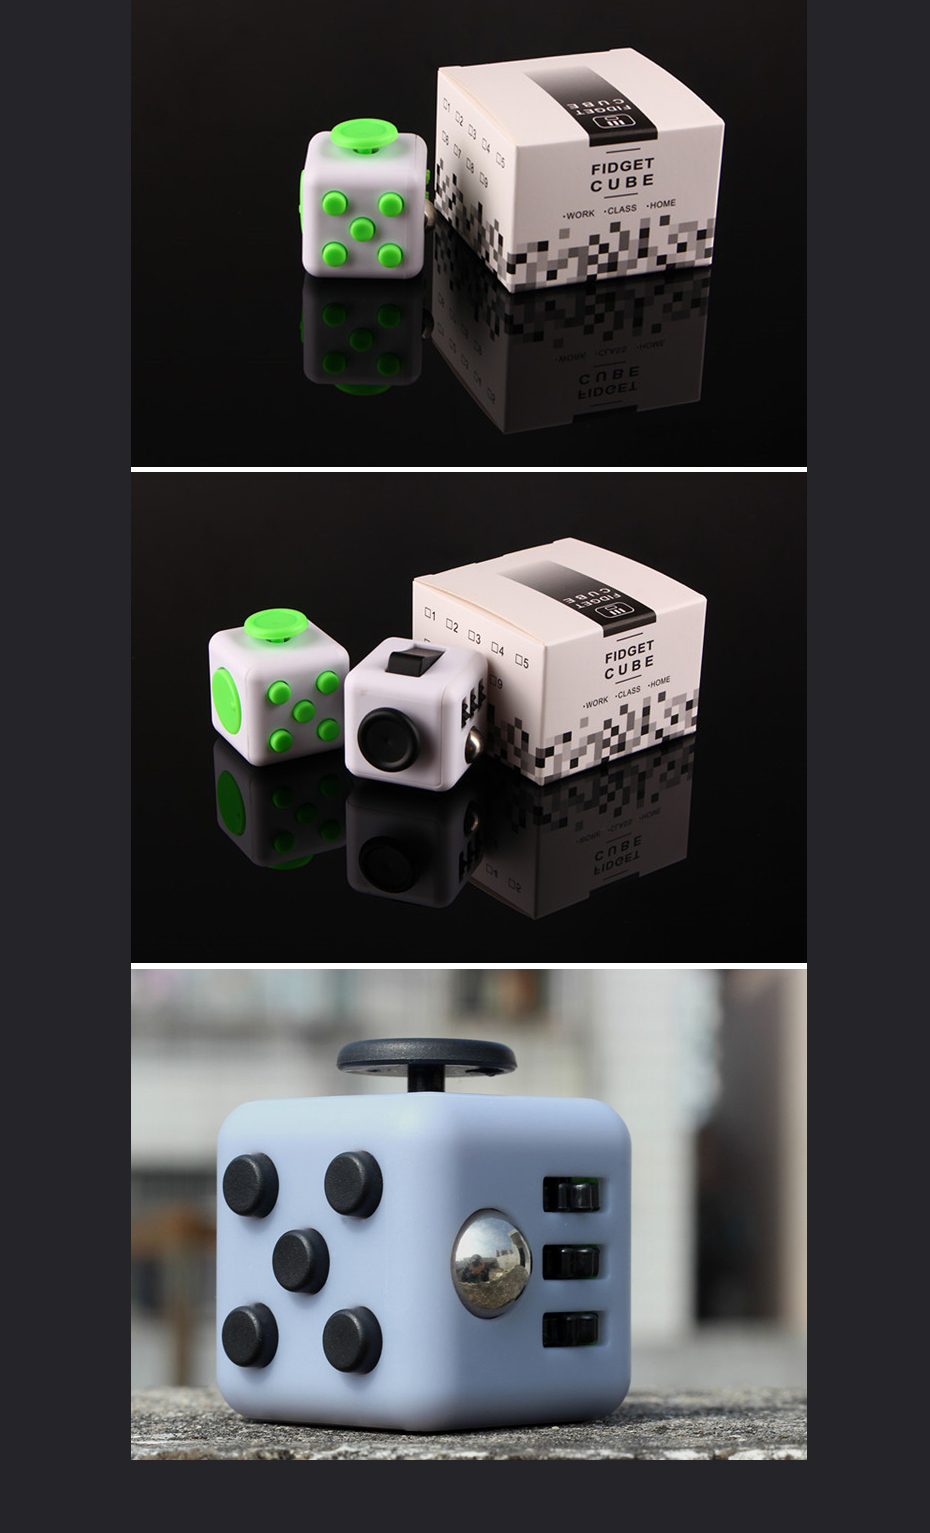 %name 11 Colors Fun Fidget Cube Toy Dice Anxiety Attention Anti stress